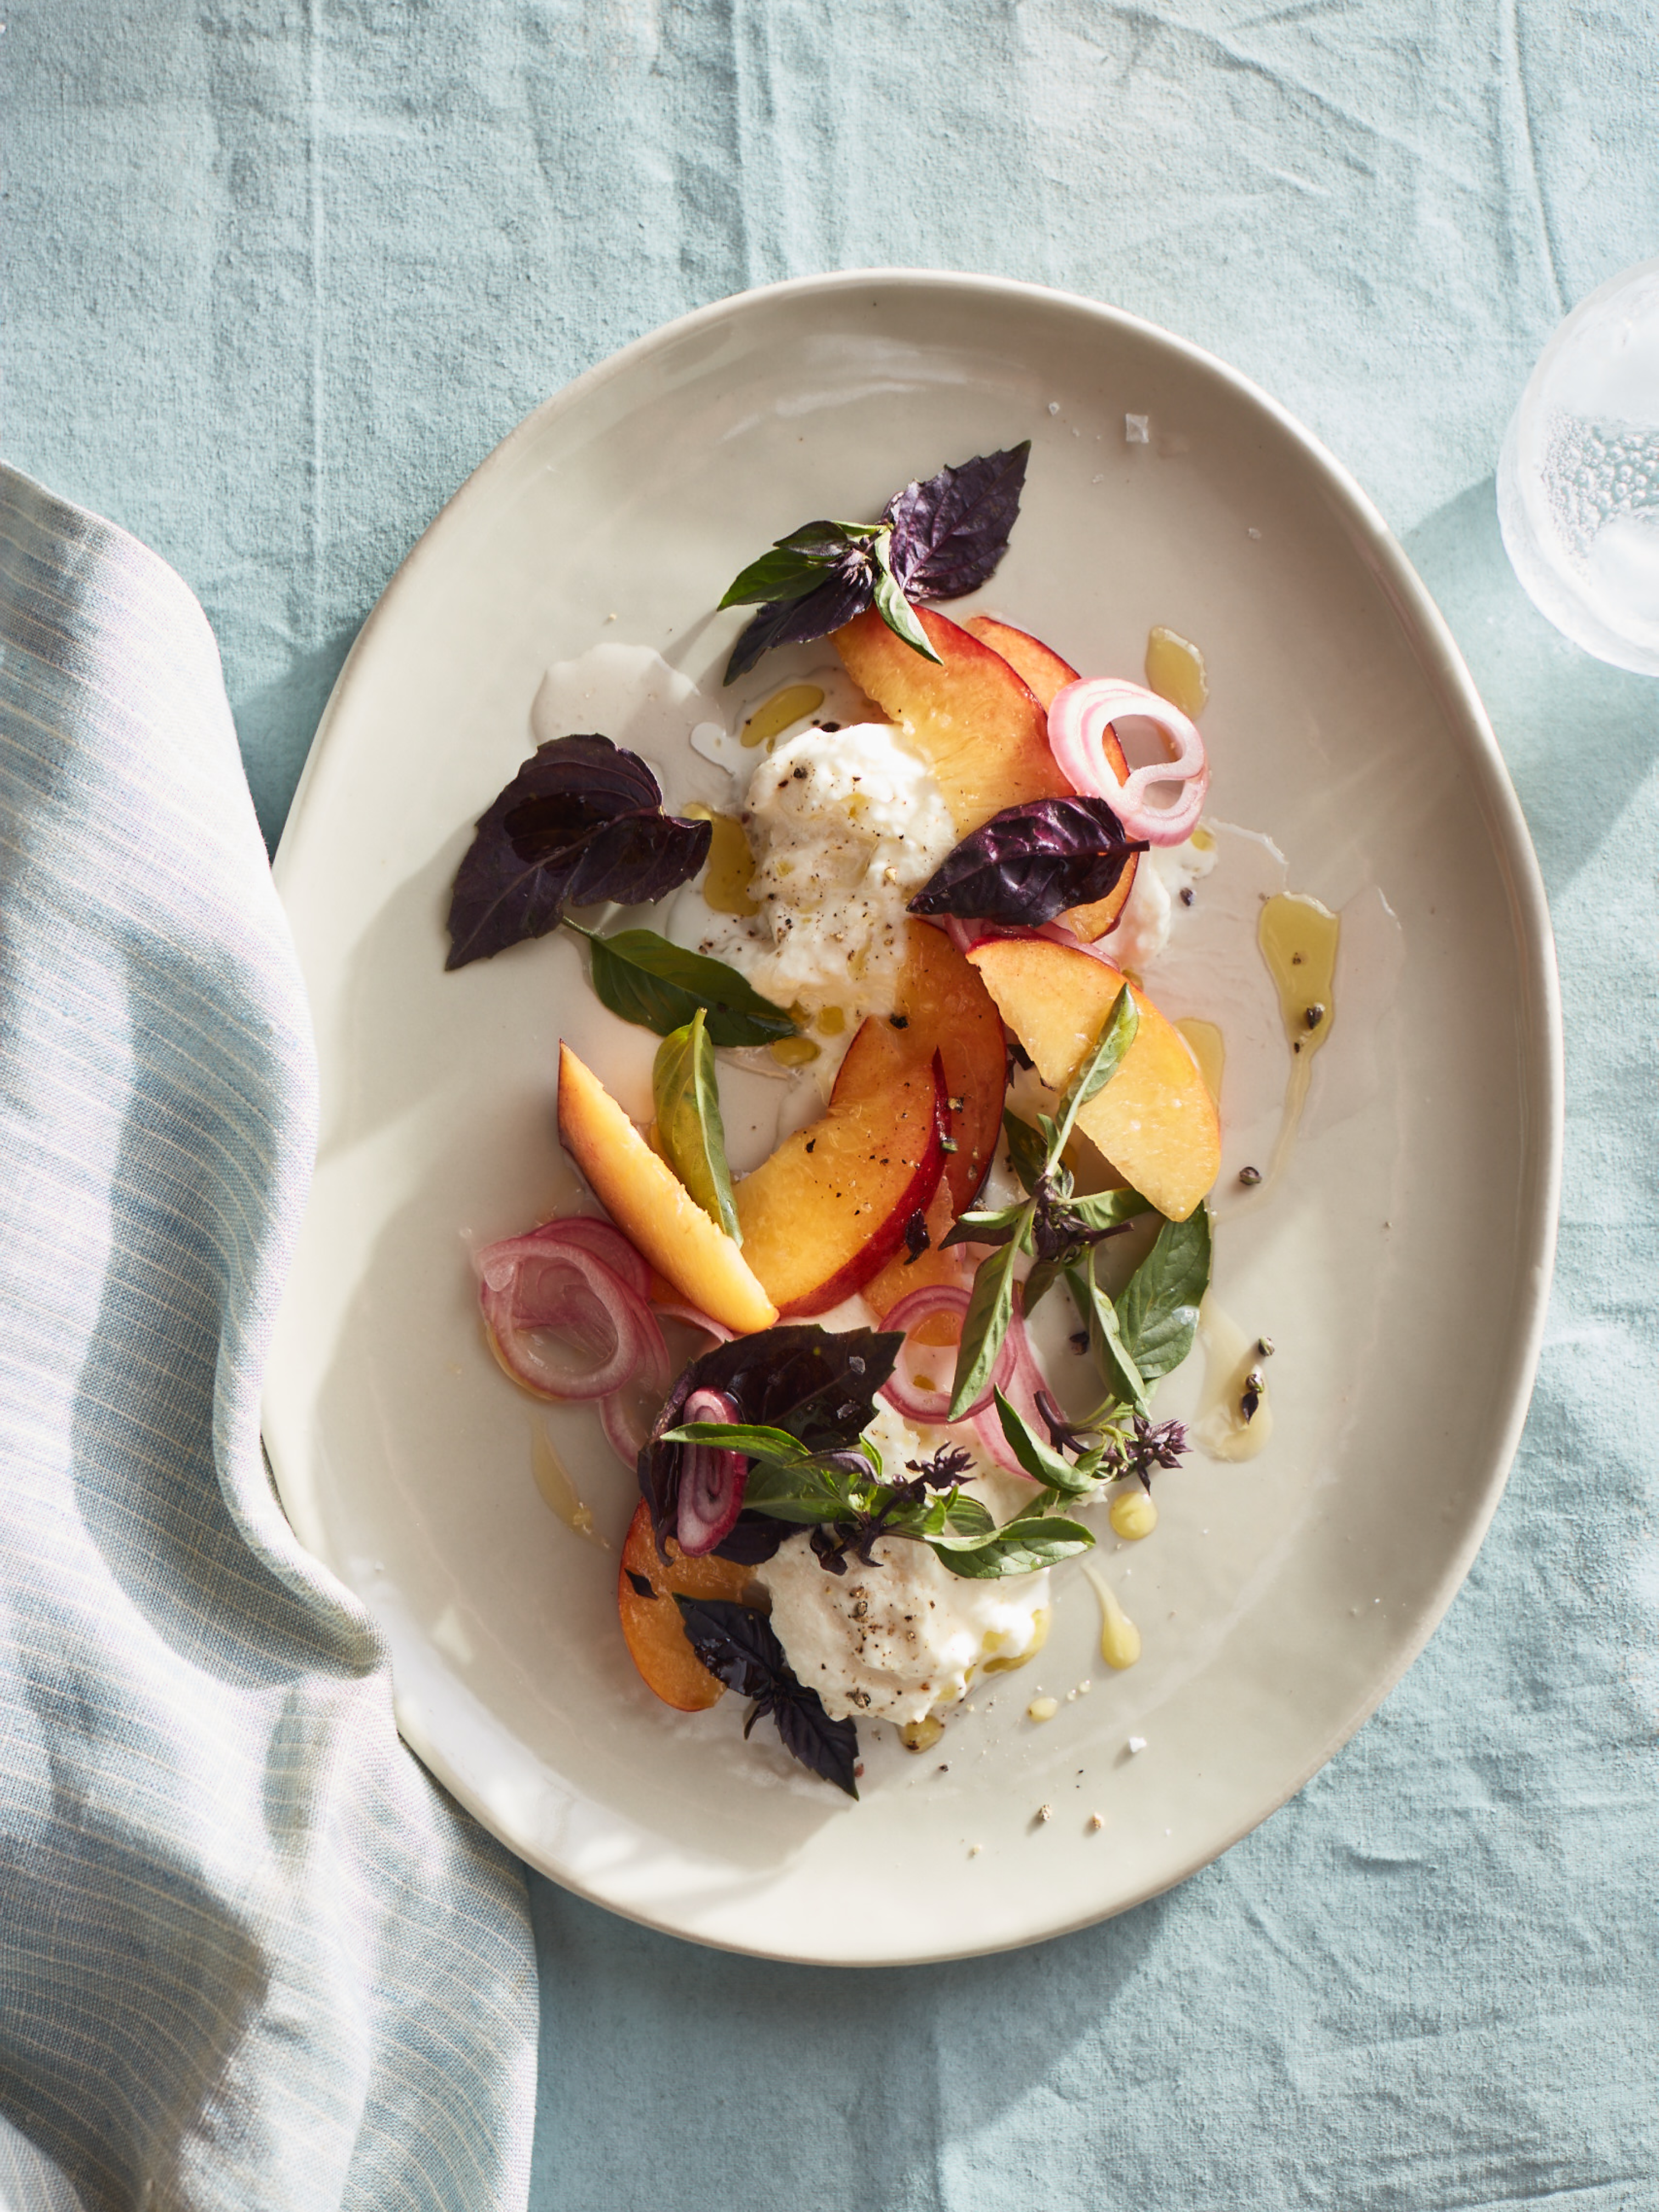 7 Easy Summer Recipes to Make Weeknight Cooking a Breeze